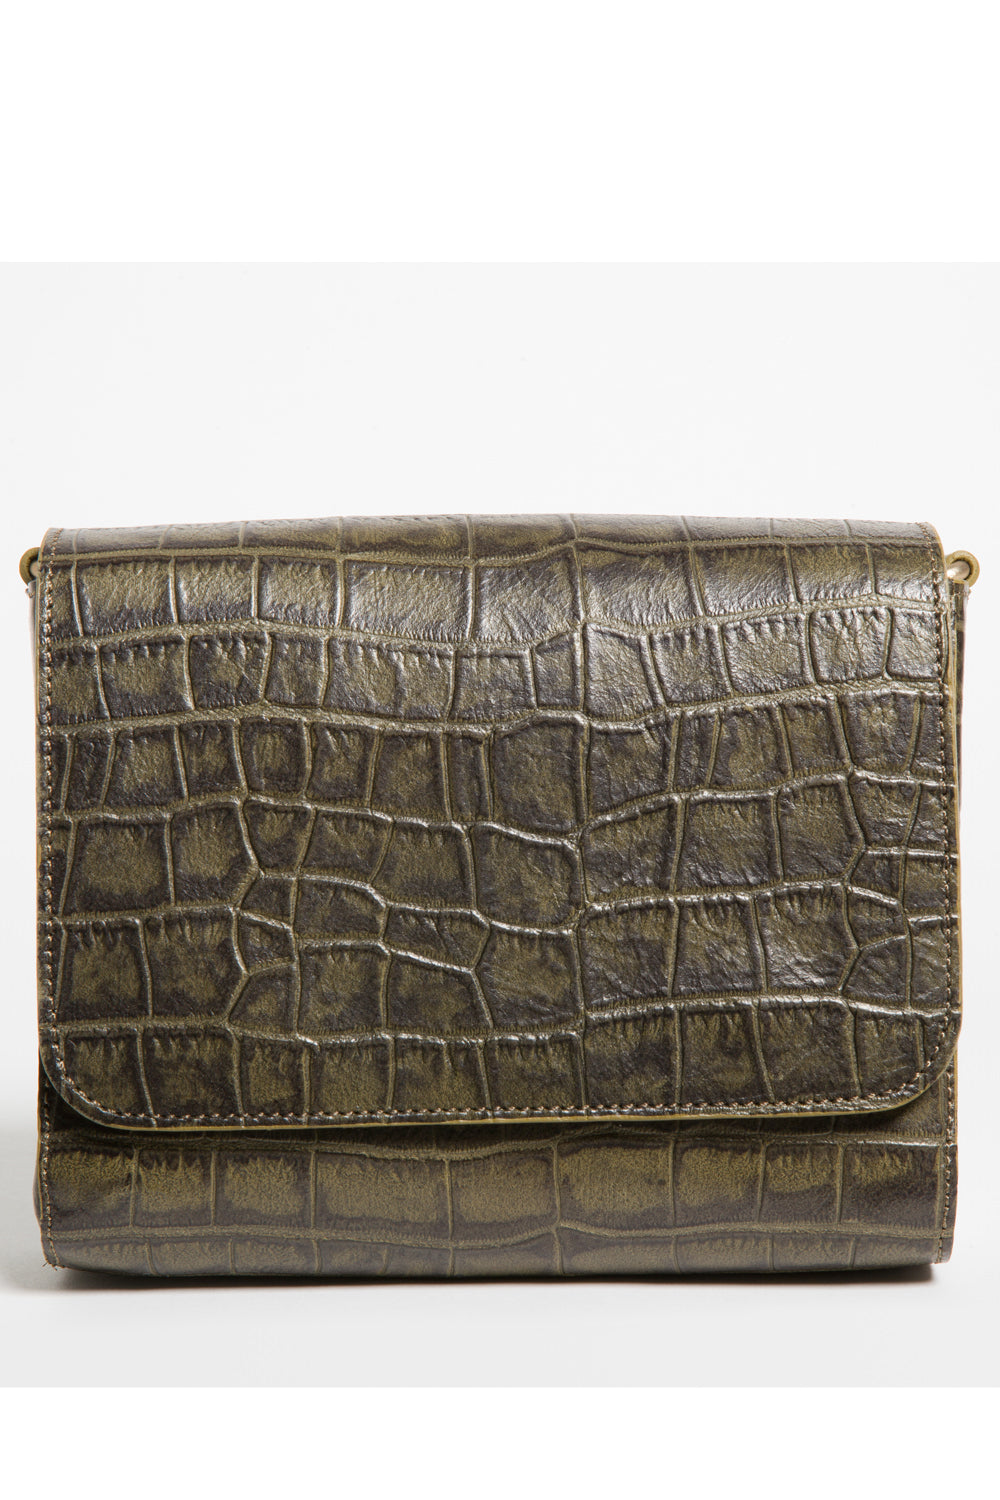 'Gema' Small Shoulder Bag in Green Moss, Croc-Emboss Leather | Mel Boteri | Clutch View